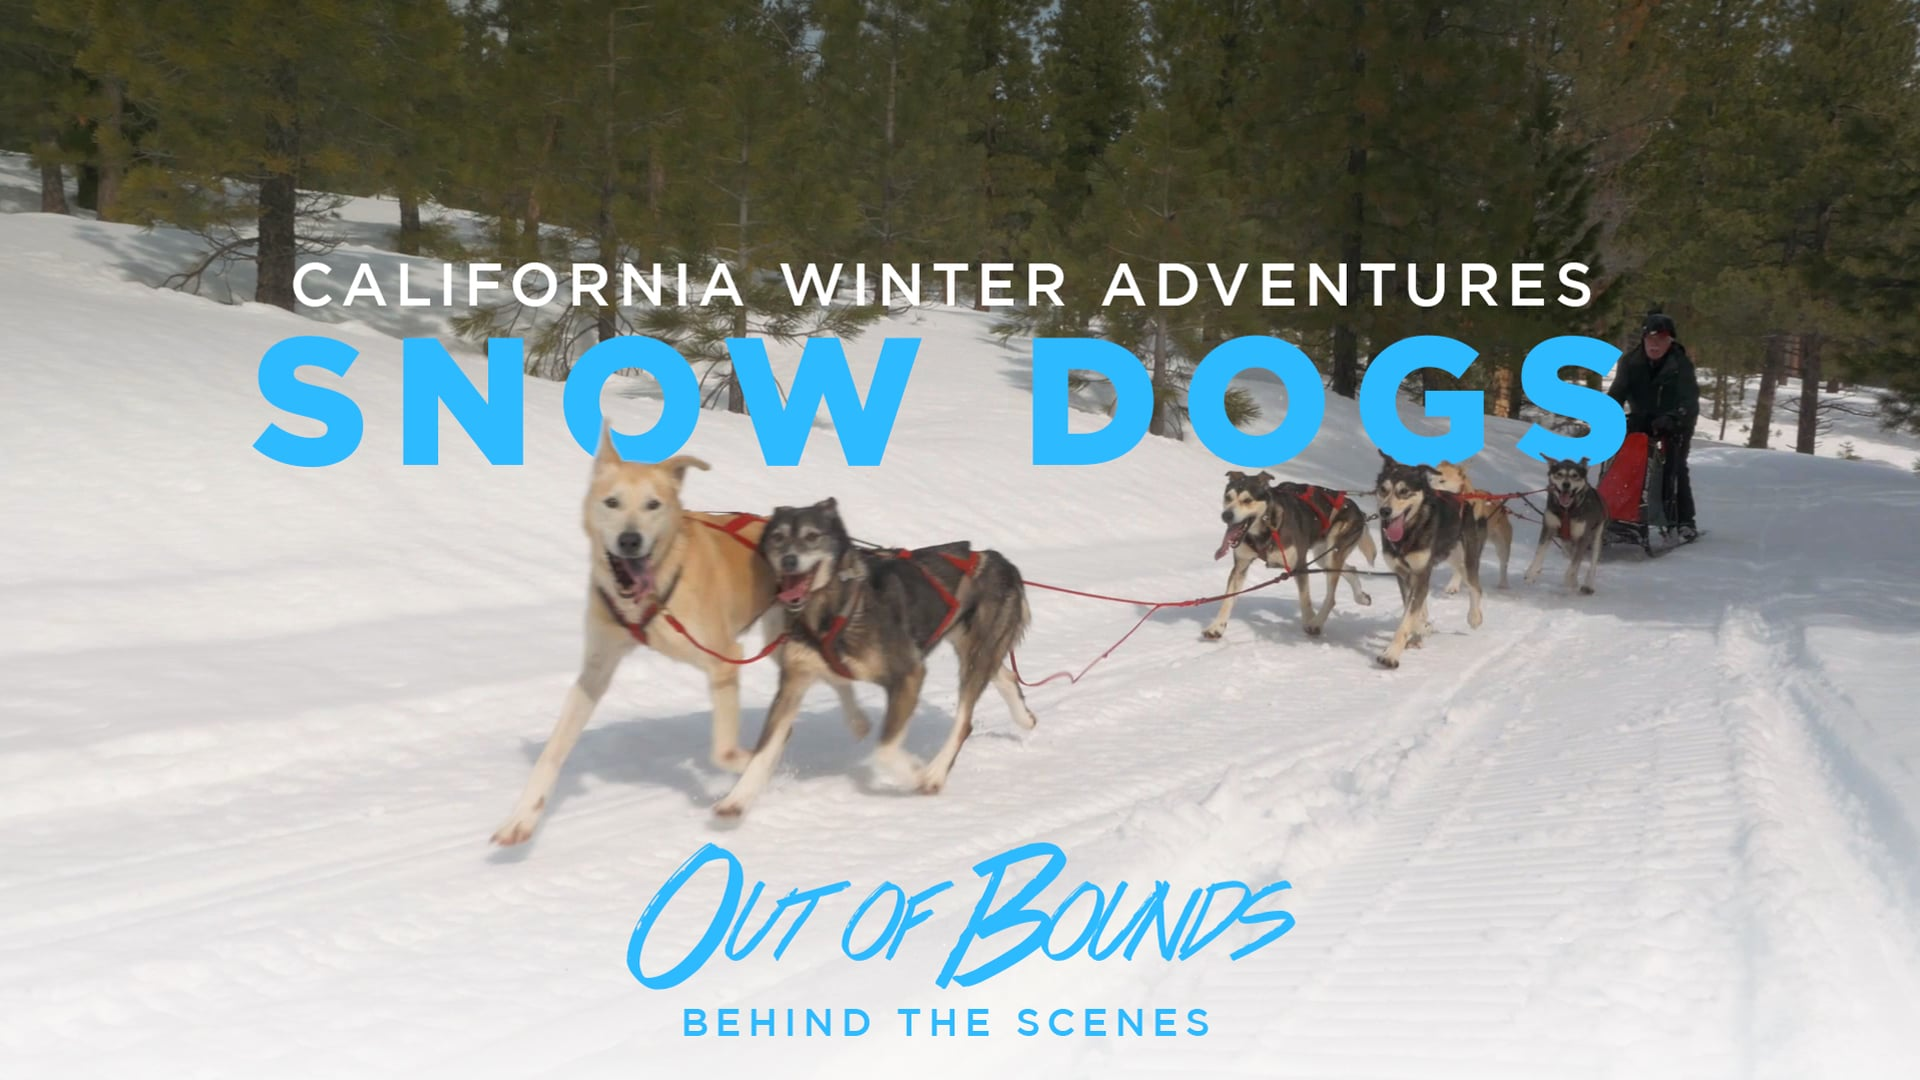 Out of Bounds - Behind the Scenes 3 - California Winter Adventures: Snow Dogs